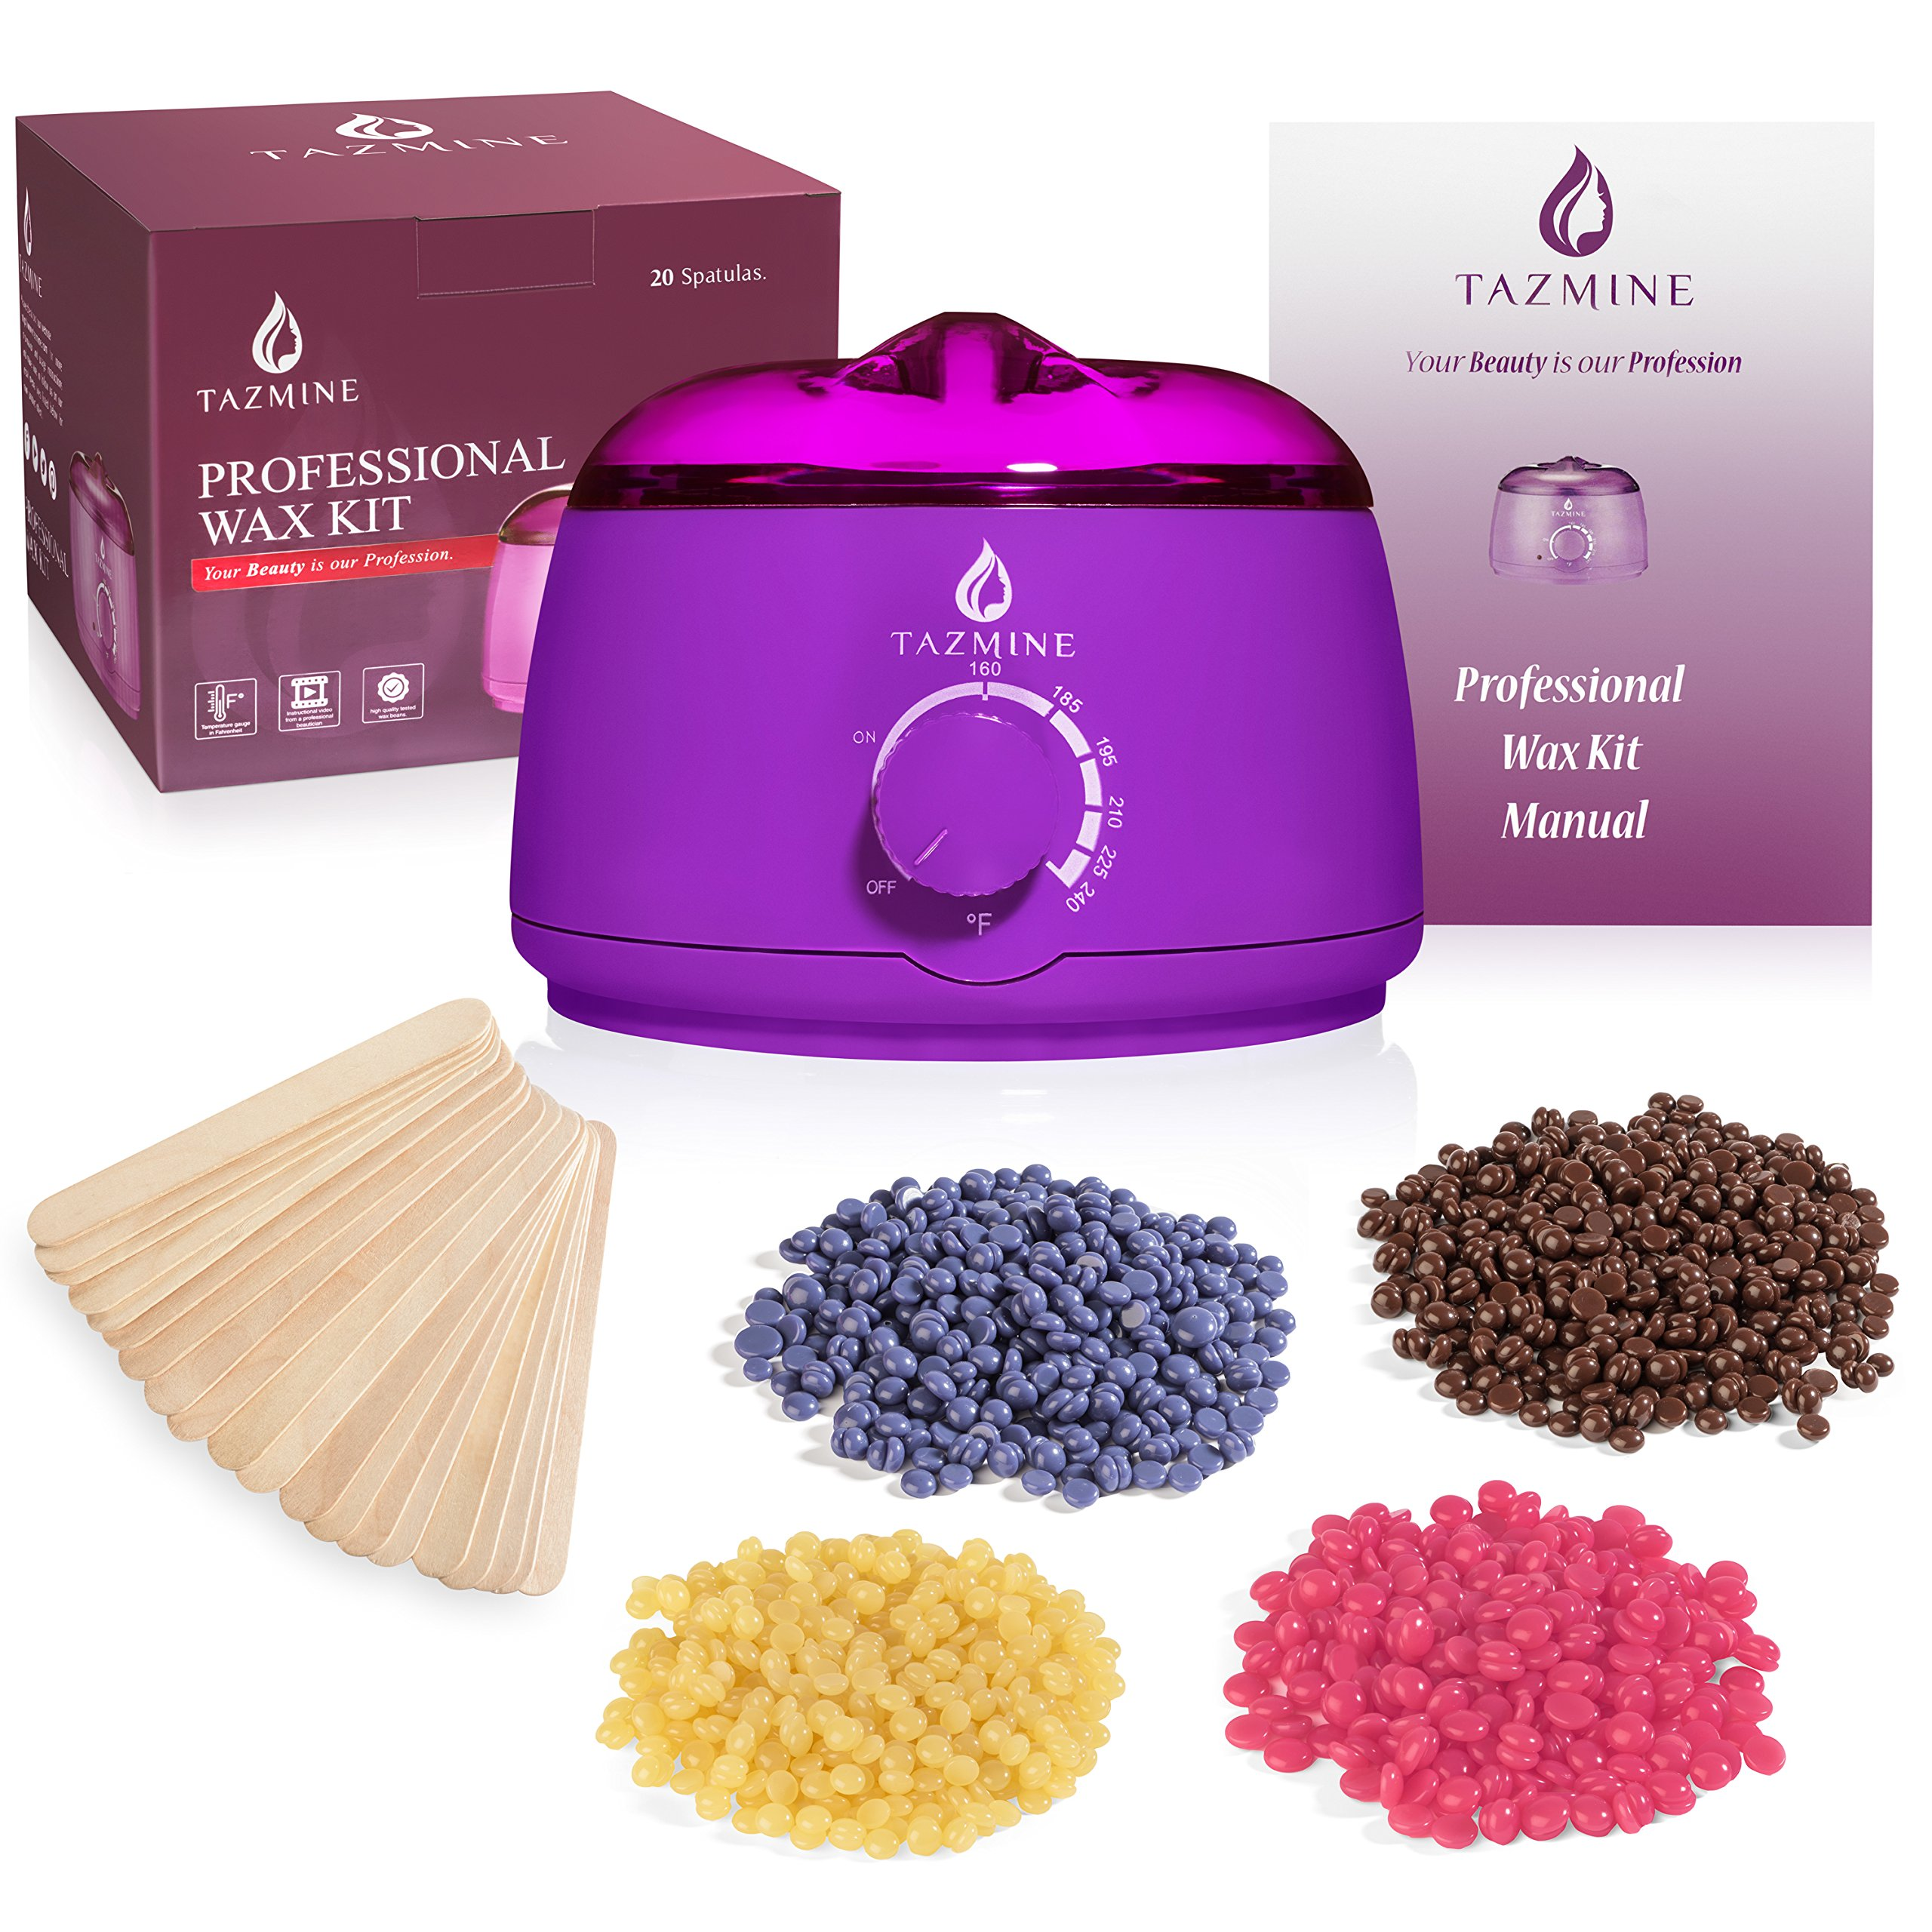 Hard Wax Warmer Kit For Women By Tazmine Beauty - Electric Waxing Pot With 20 Spatulas + 4 Bags Of Hard Wax Beans For Painless Hair Removal - Wax Melt Warmer Suitable For All Types Of Waxing